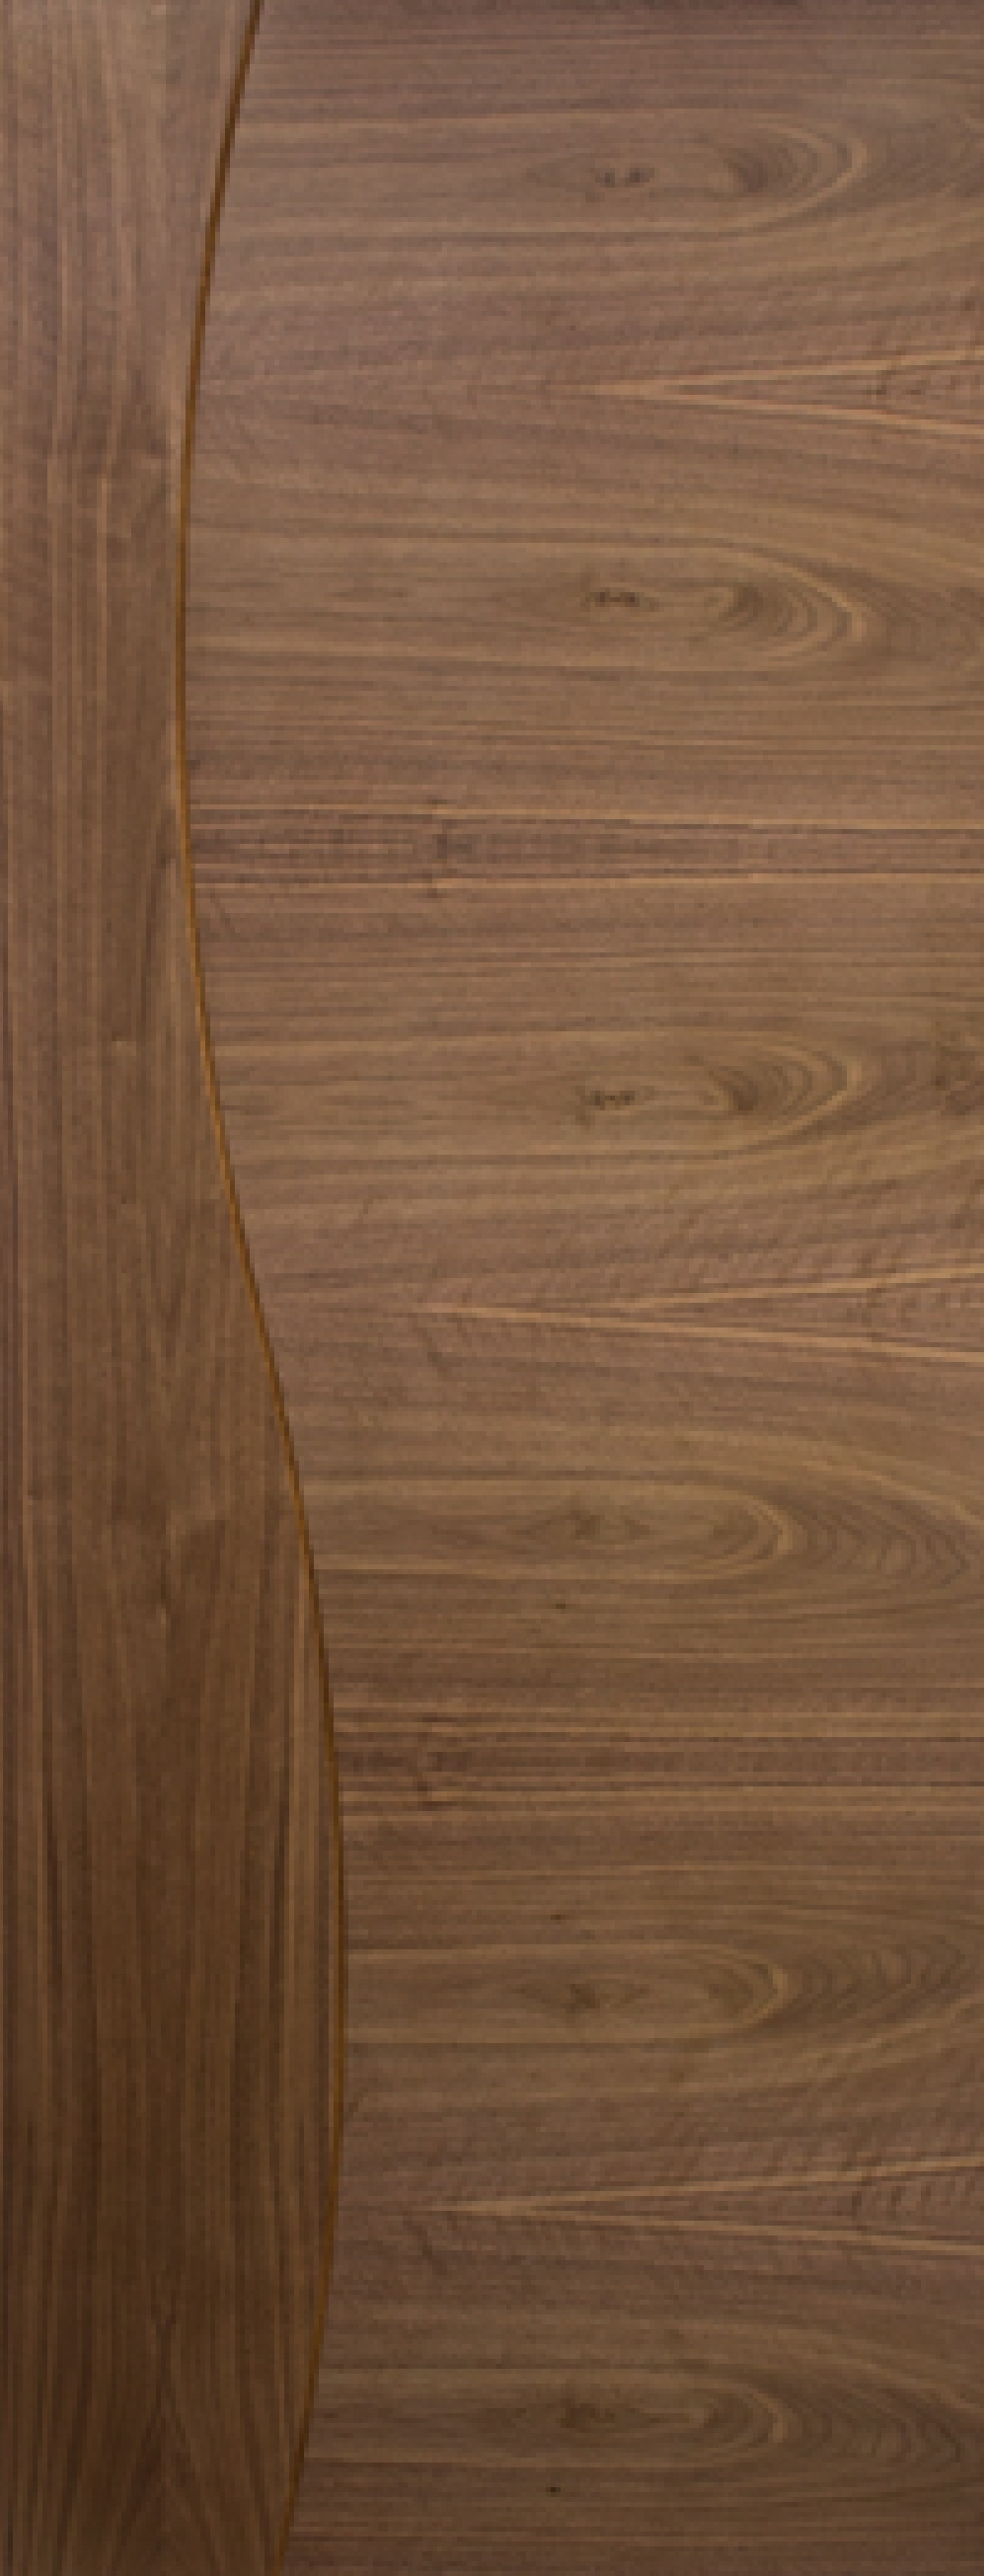 Cadiz Walnut Door - Prefinished